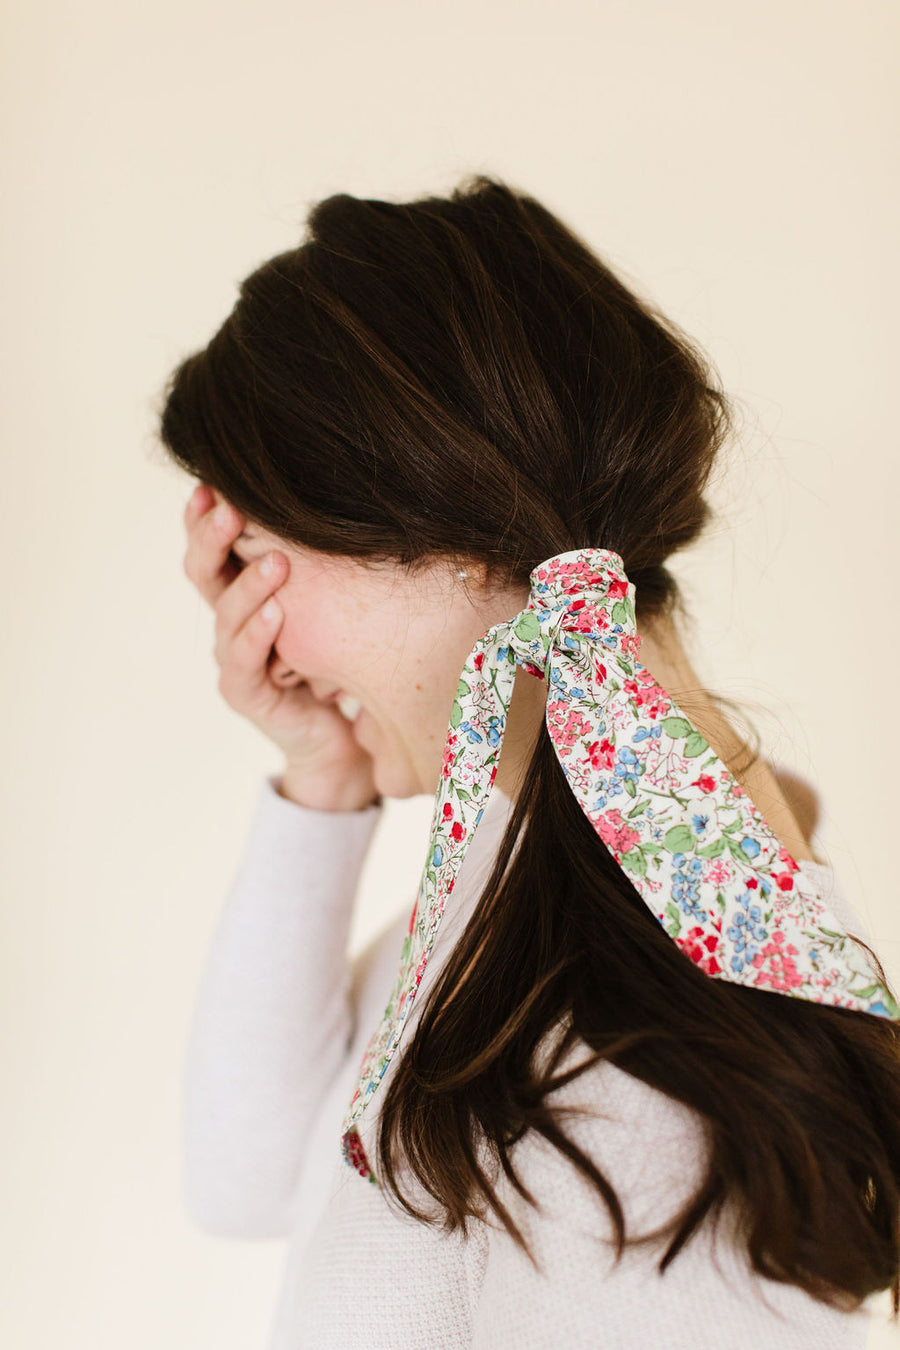 Spring Floral Everything Bow for Girls & Women - Neck scarf & Hair wrap